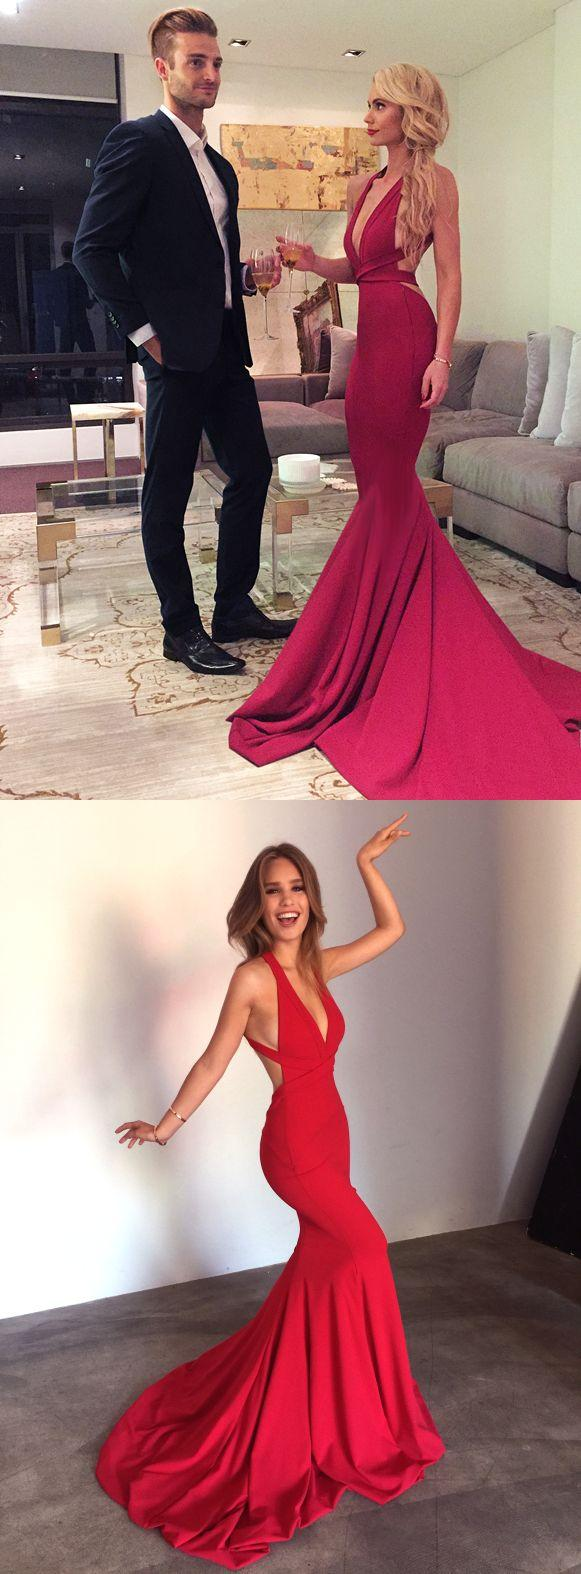 Mariage - Sexy Red Mermaid Long Prom Dress Formal Evening Dress With Criss Criss Back From Modseleystore